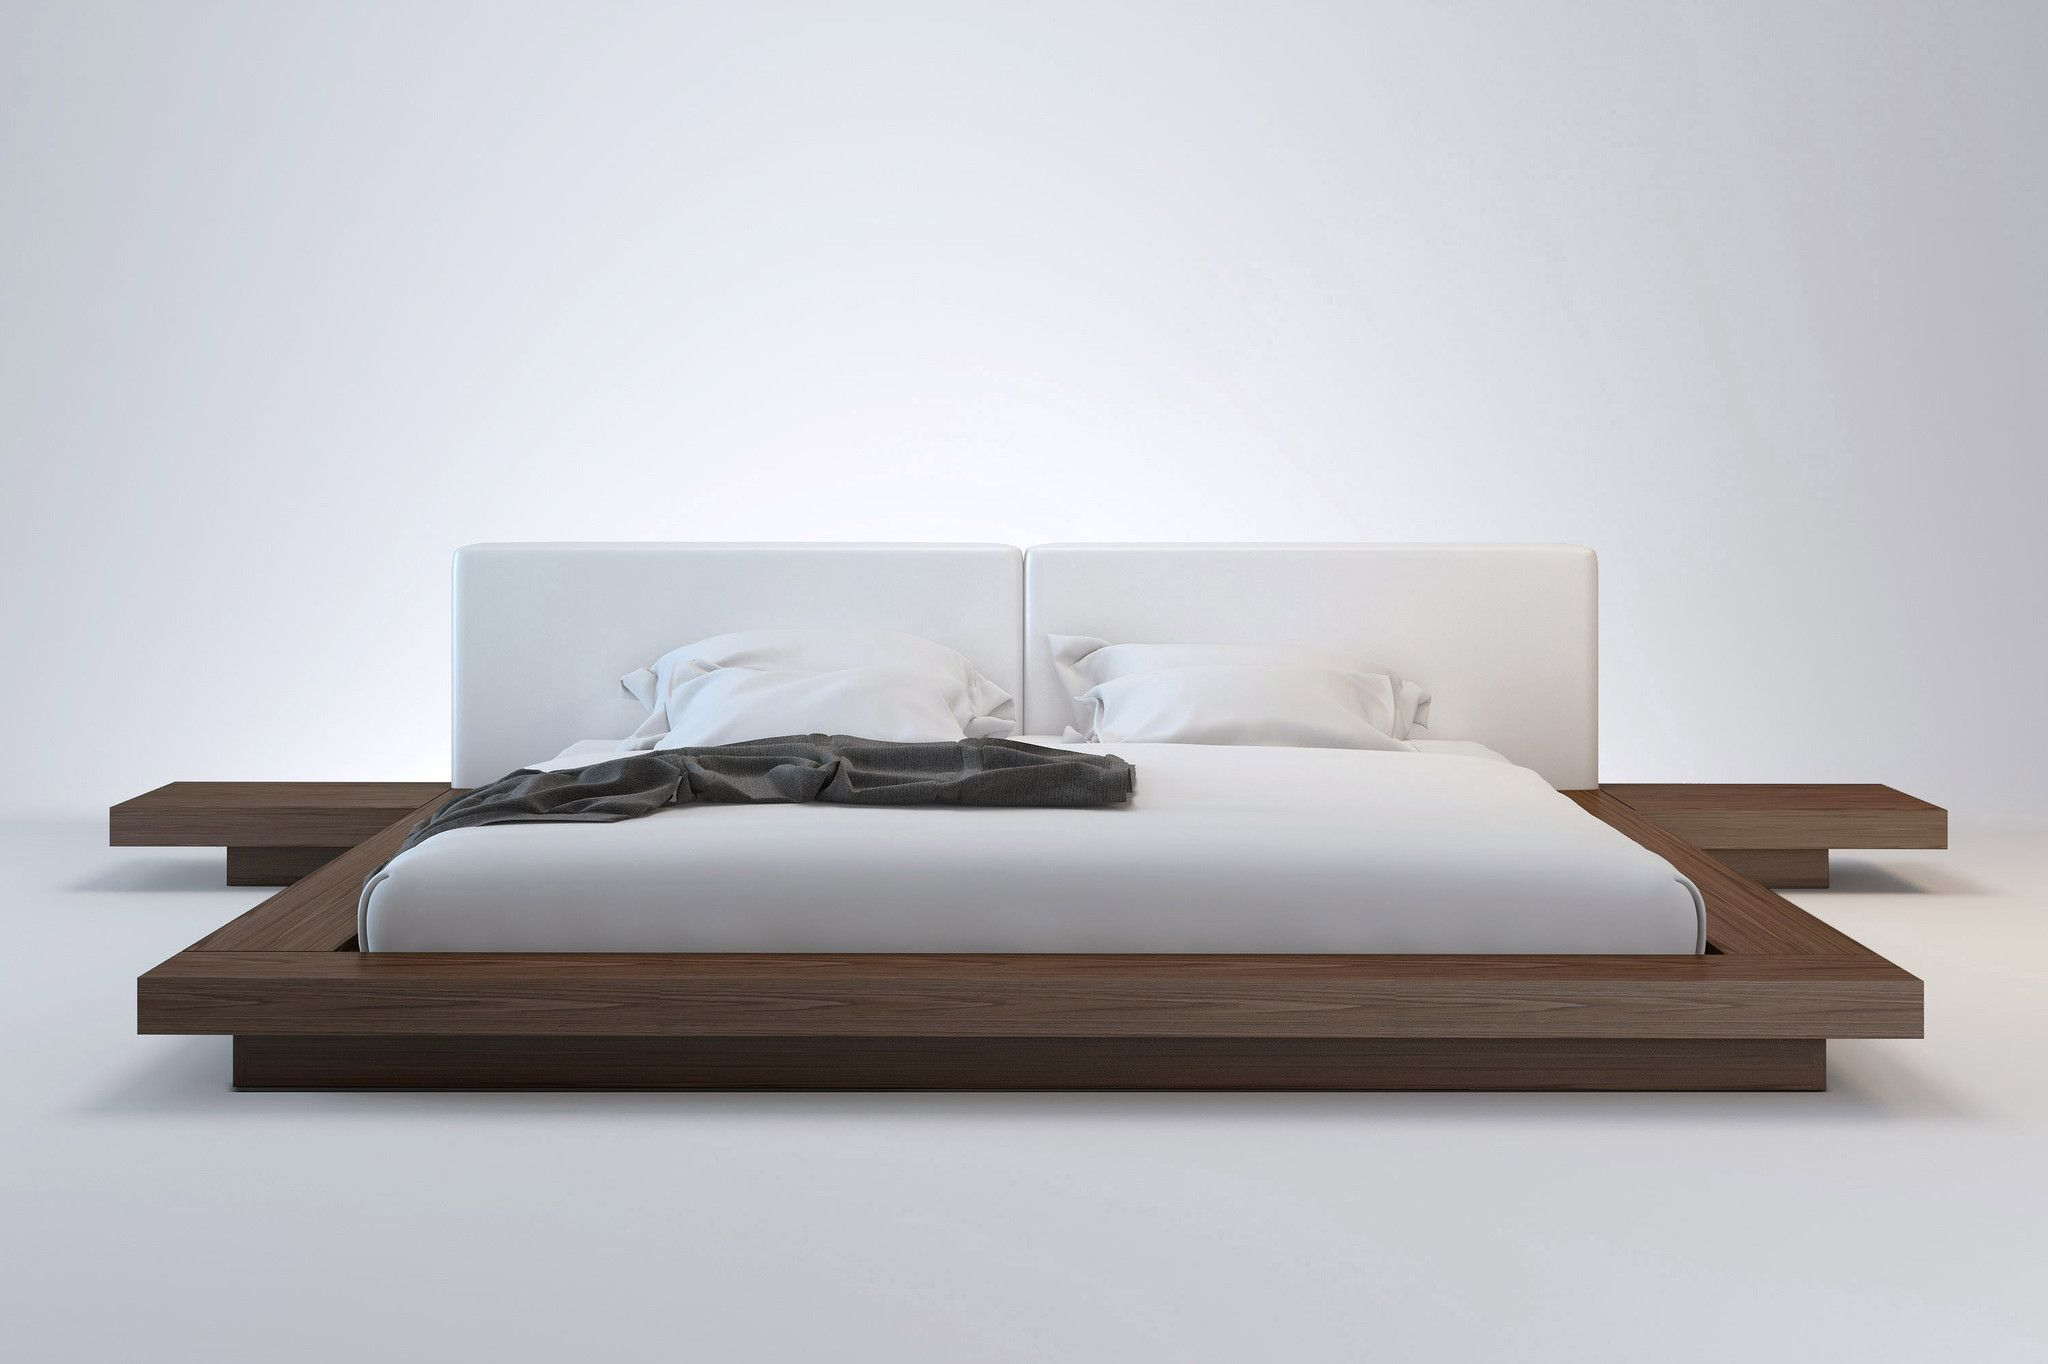 The Anese Inspired Worth Platform Bed Features A Low Profile Hardwood Frame With Matching Symmetrical Nightstands An Upholstered Eco Pelle Headboard